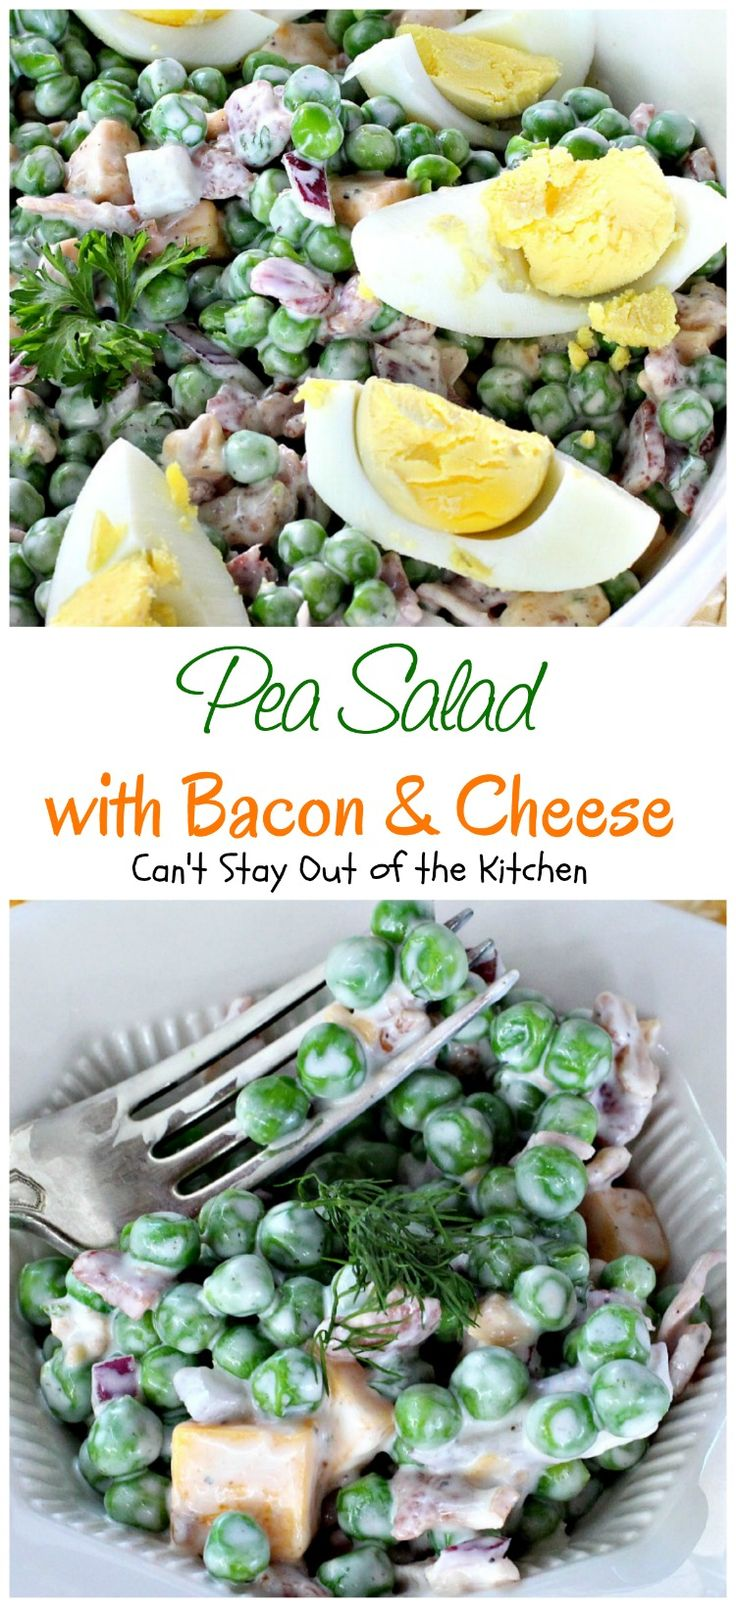 Pea Salad with Bacon and Cheese